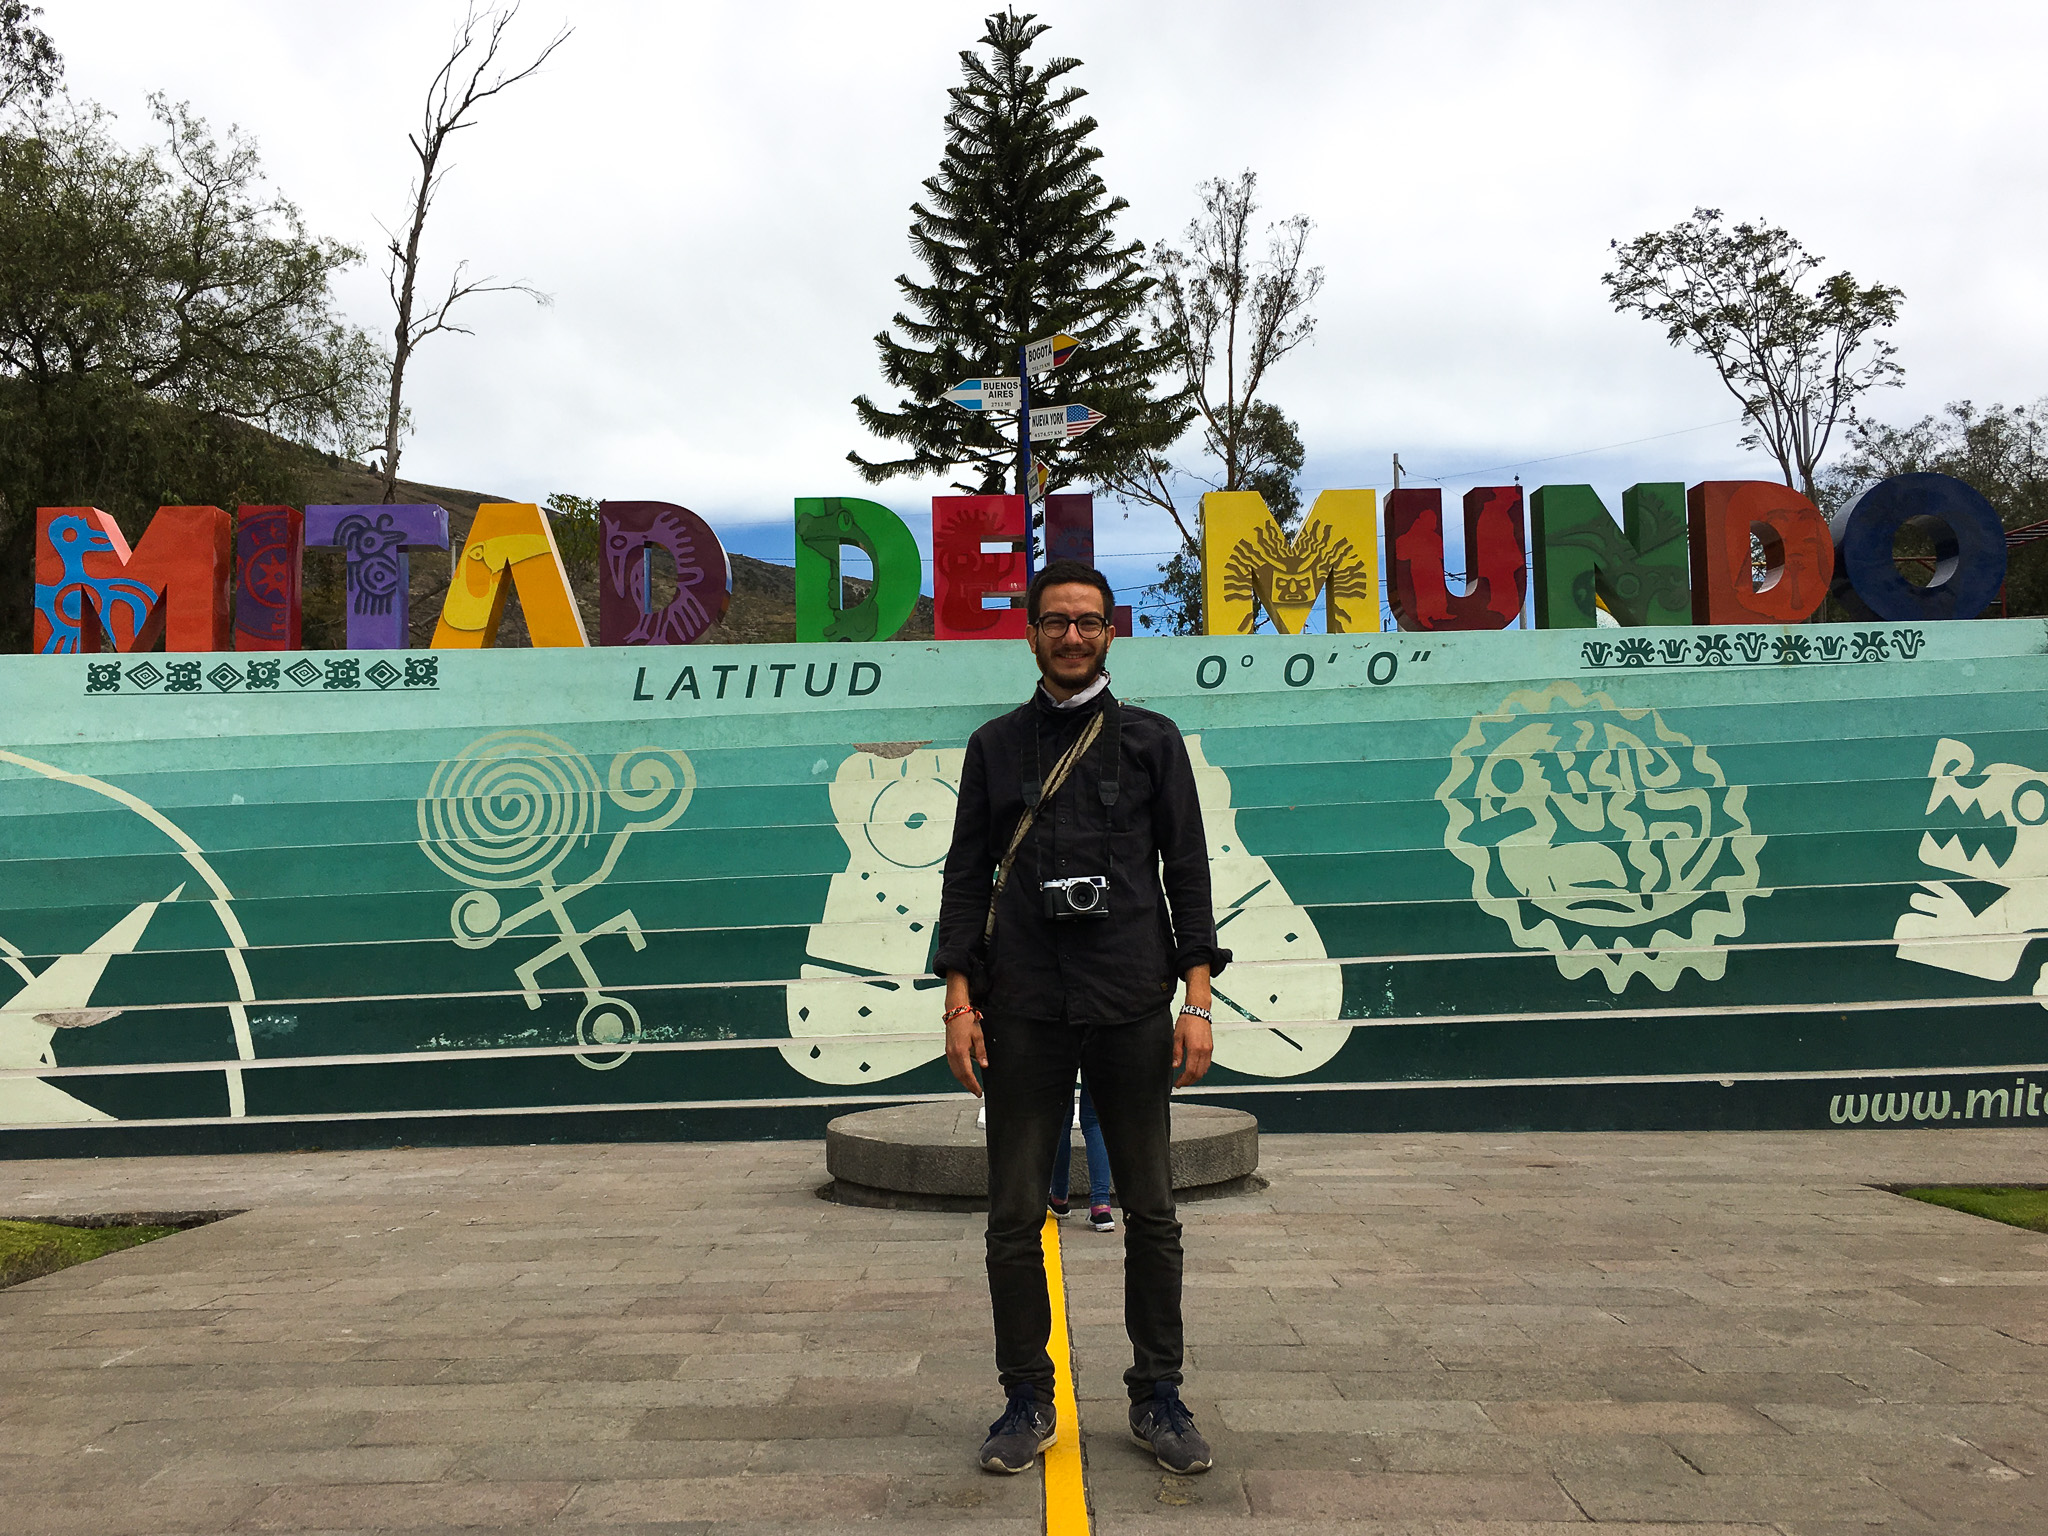 Standing on the equator, 40km outside of Quito. Also known as Mitad del Mundo.